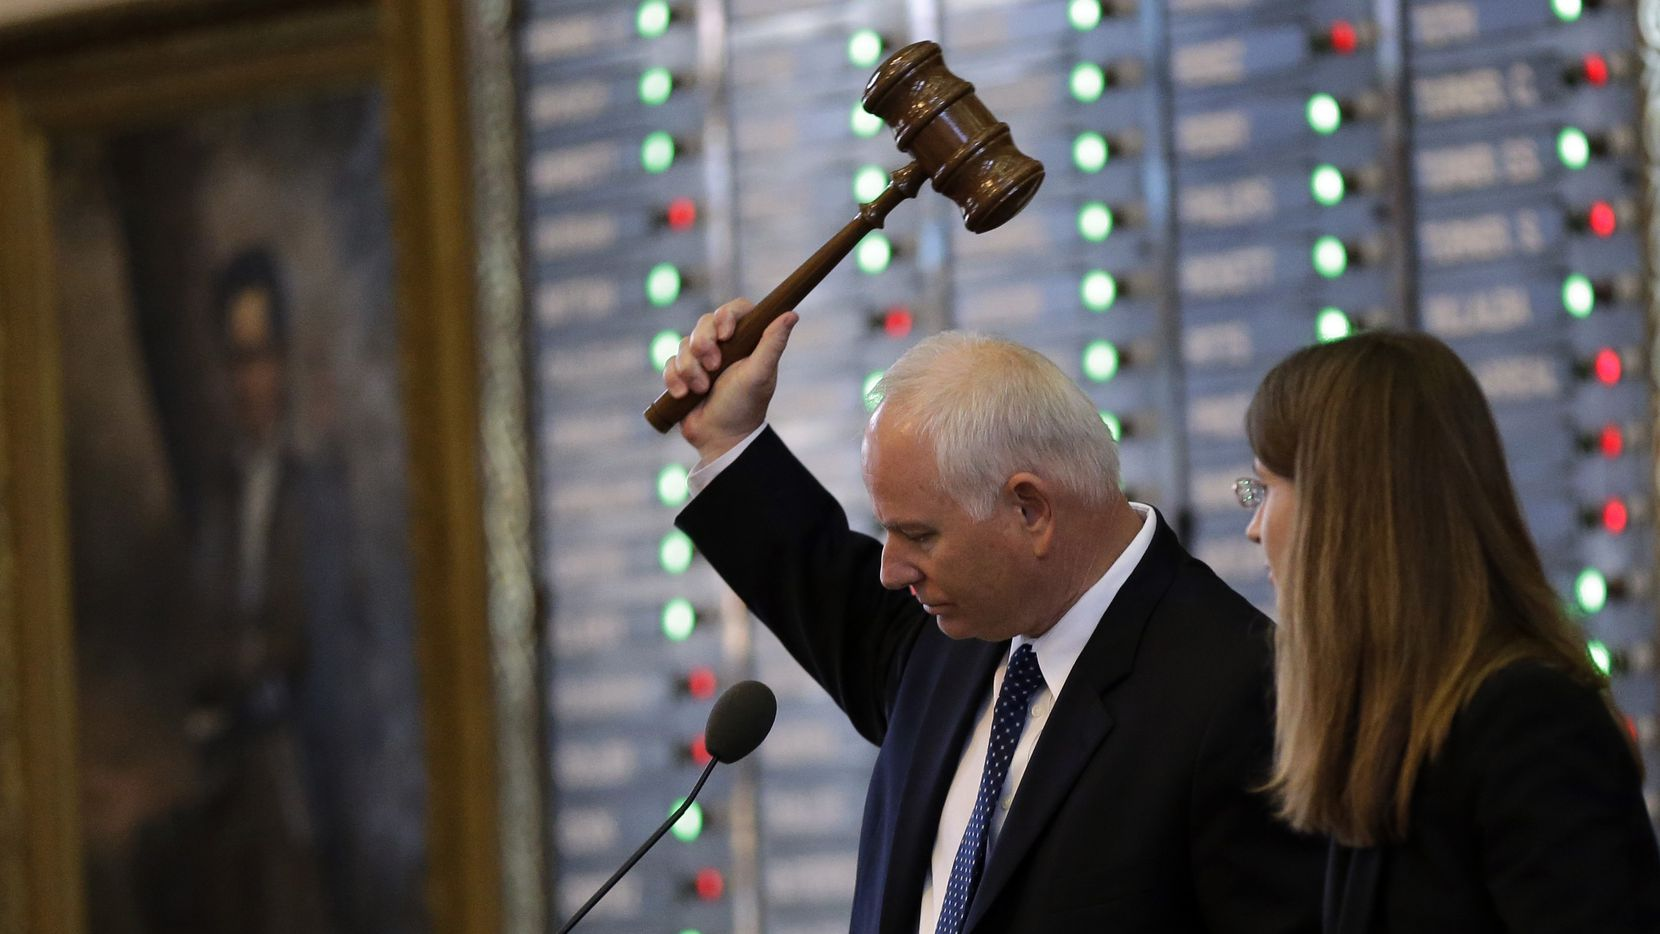 Rep. Allan Ritter, R-Nederland, strikes the gavel as the Texas House votes on an amendment to HB 2, legislation that will restrict abortion rights, on the Texas House floor,Tuesday, July 9, 2013, in Austin, Texas. The Texas House is expected to vote on the bill Tuesday. (AP Photo/Eric Gay)